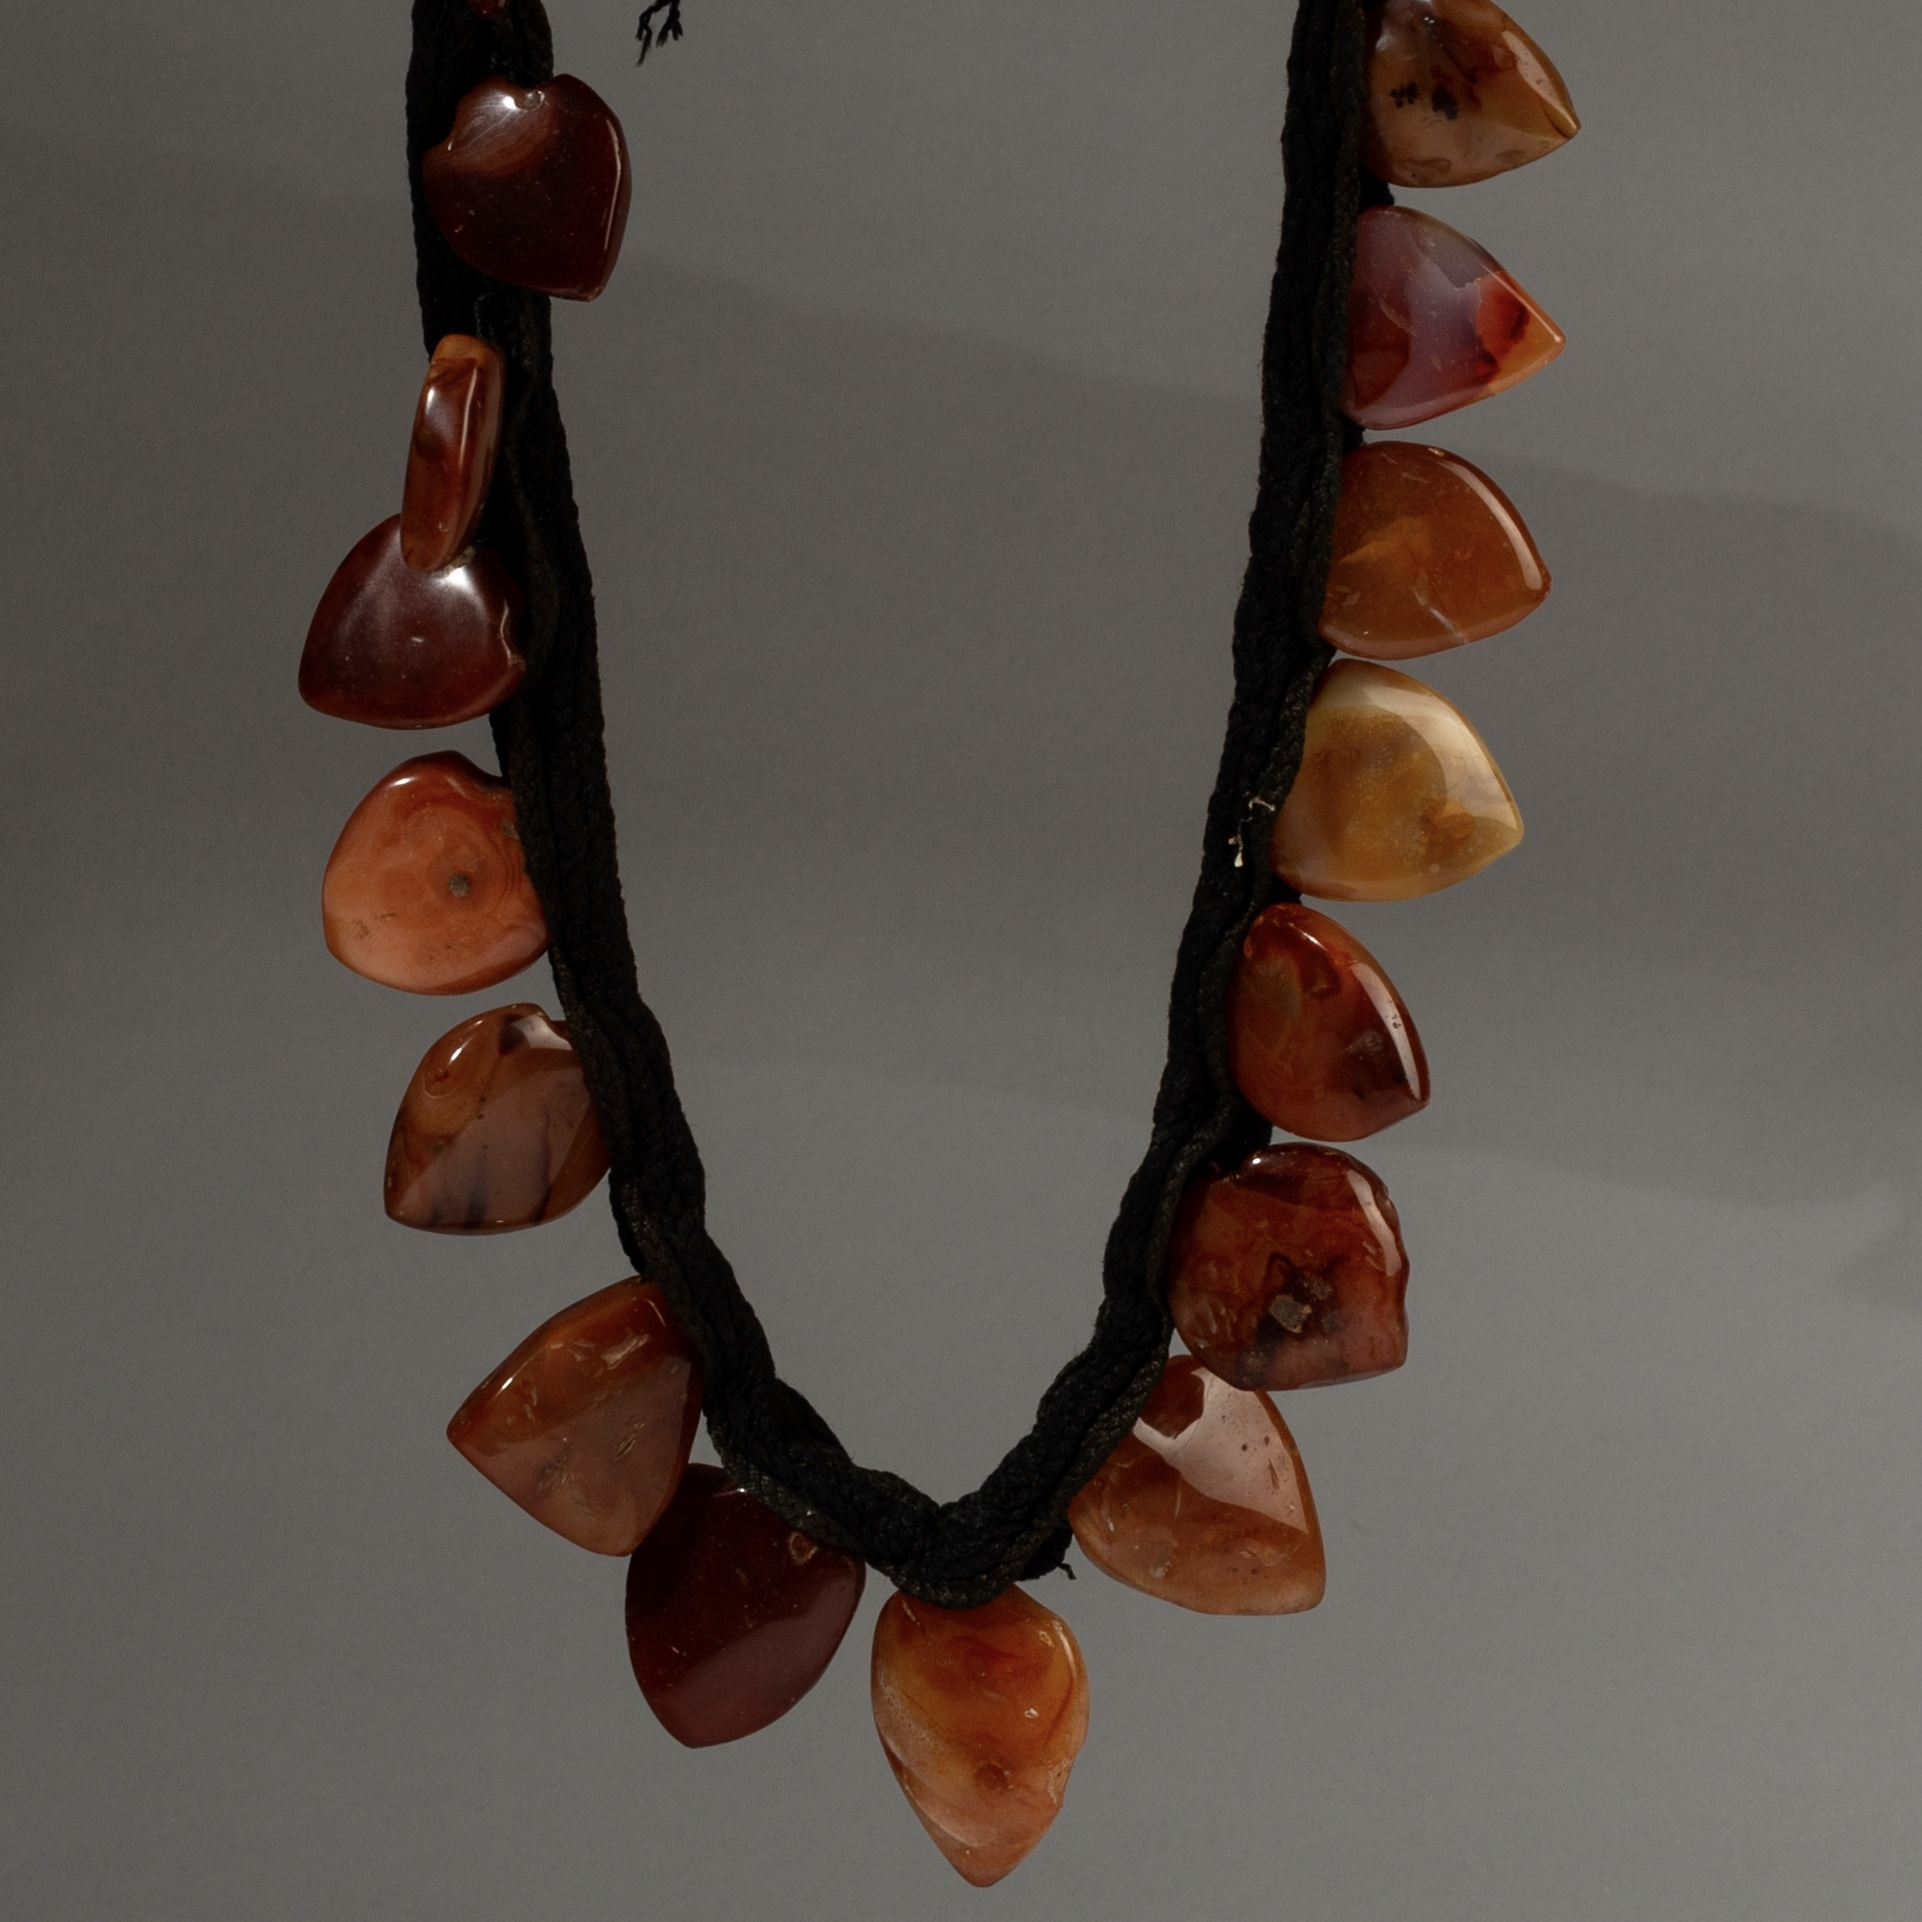 ( Sold timtim )-A VINTAGE CARNELIAN TRADE BEAD NECKLACE ( No 3227 )